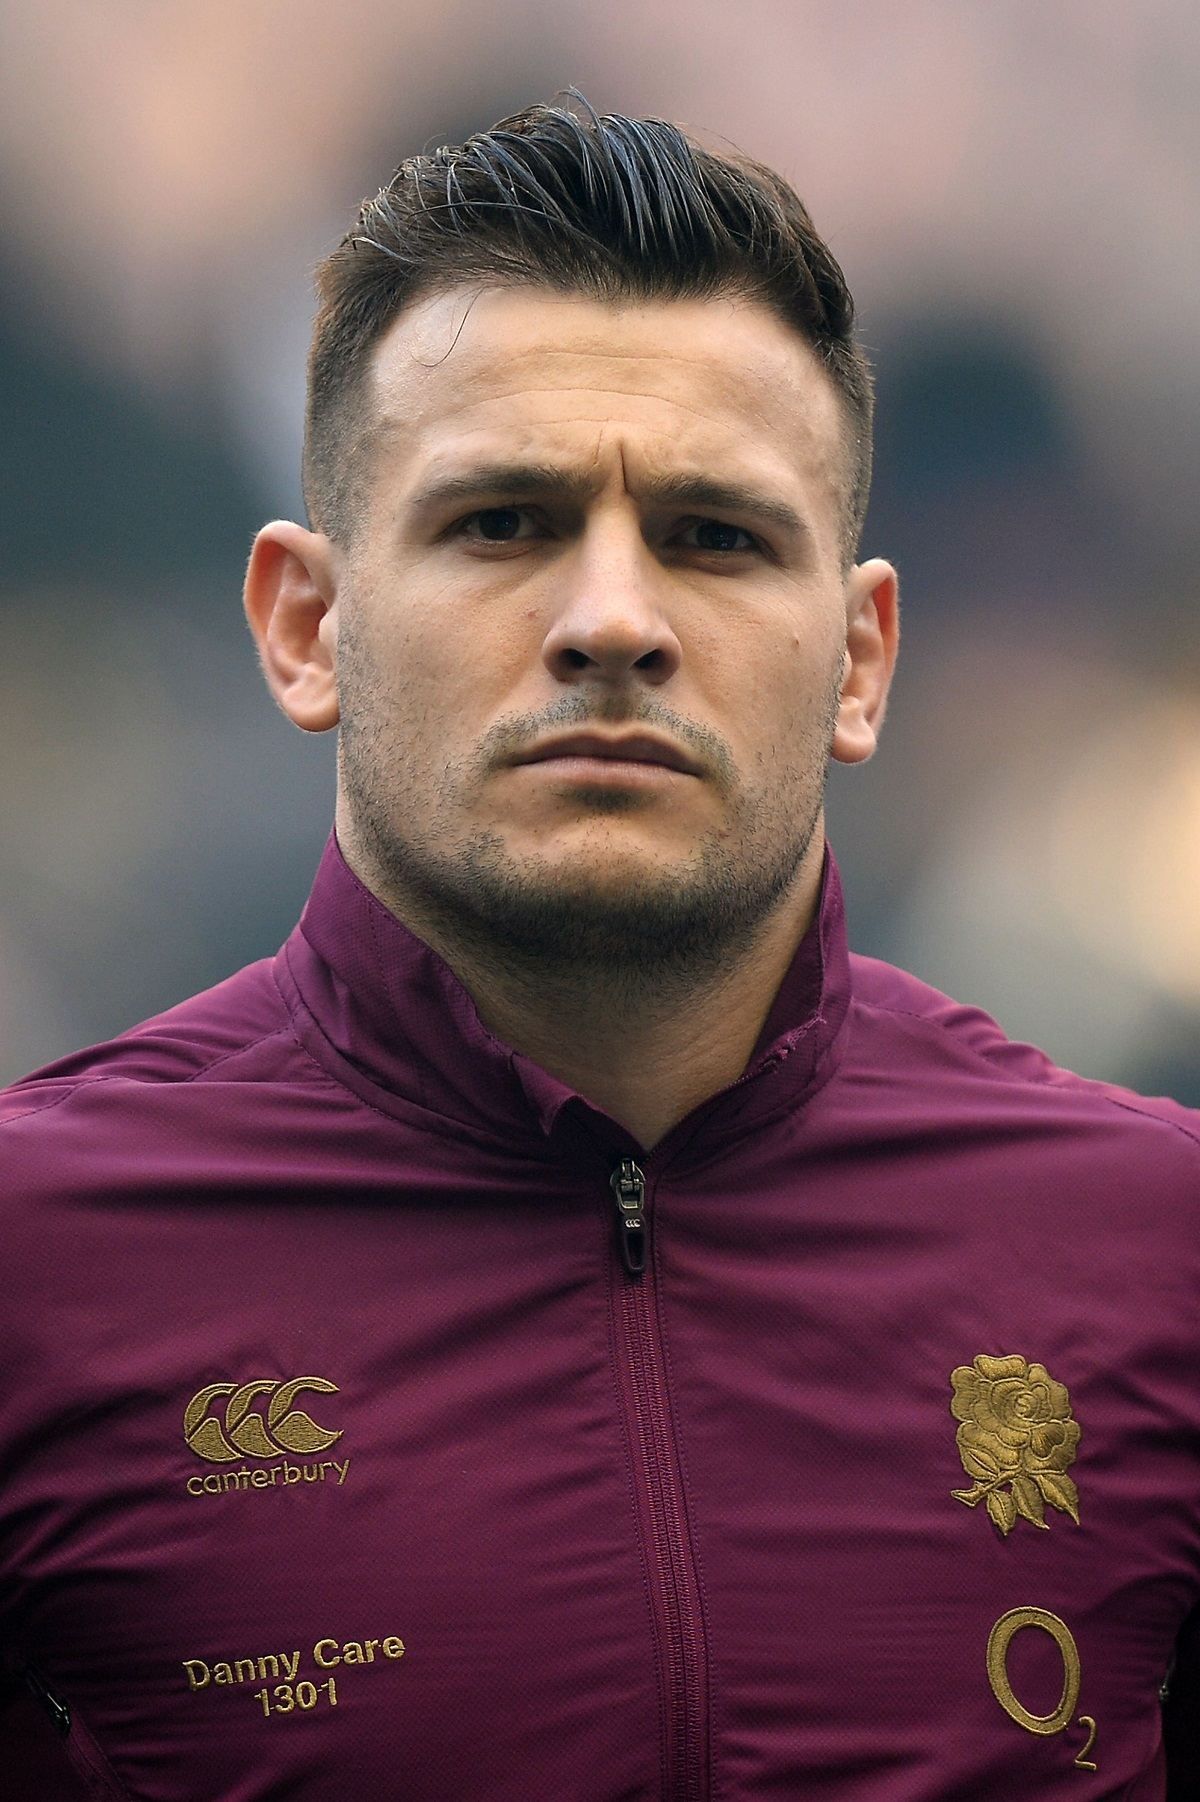 Danny Care made a pig's ear of a grubber kick in training, which had serious consequences